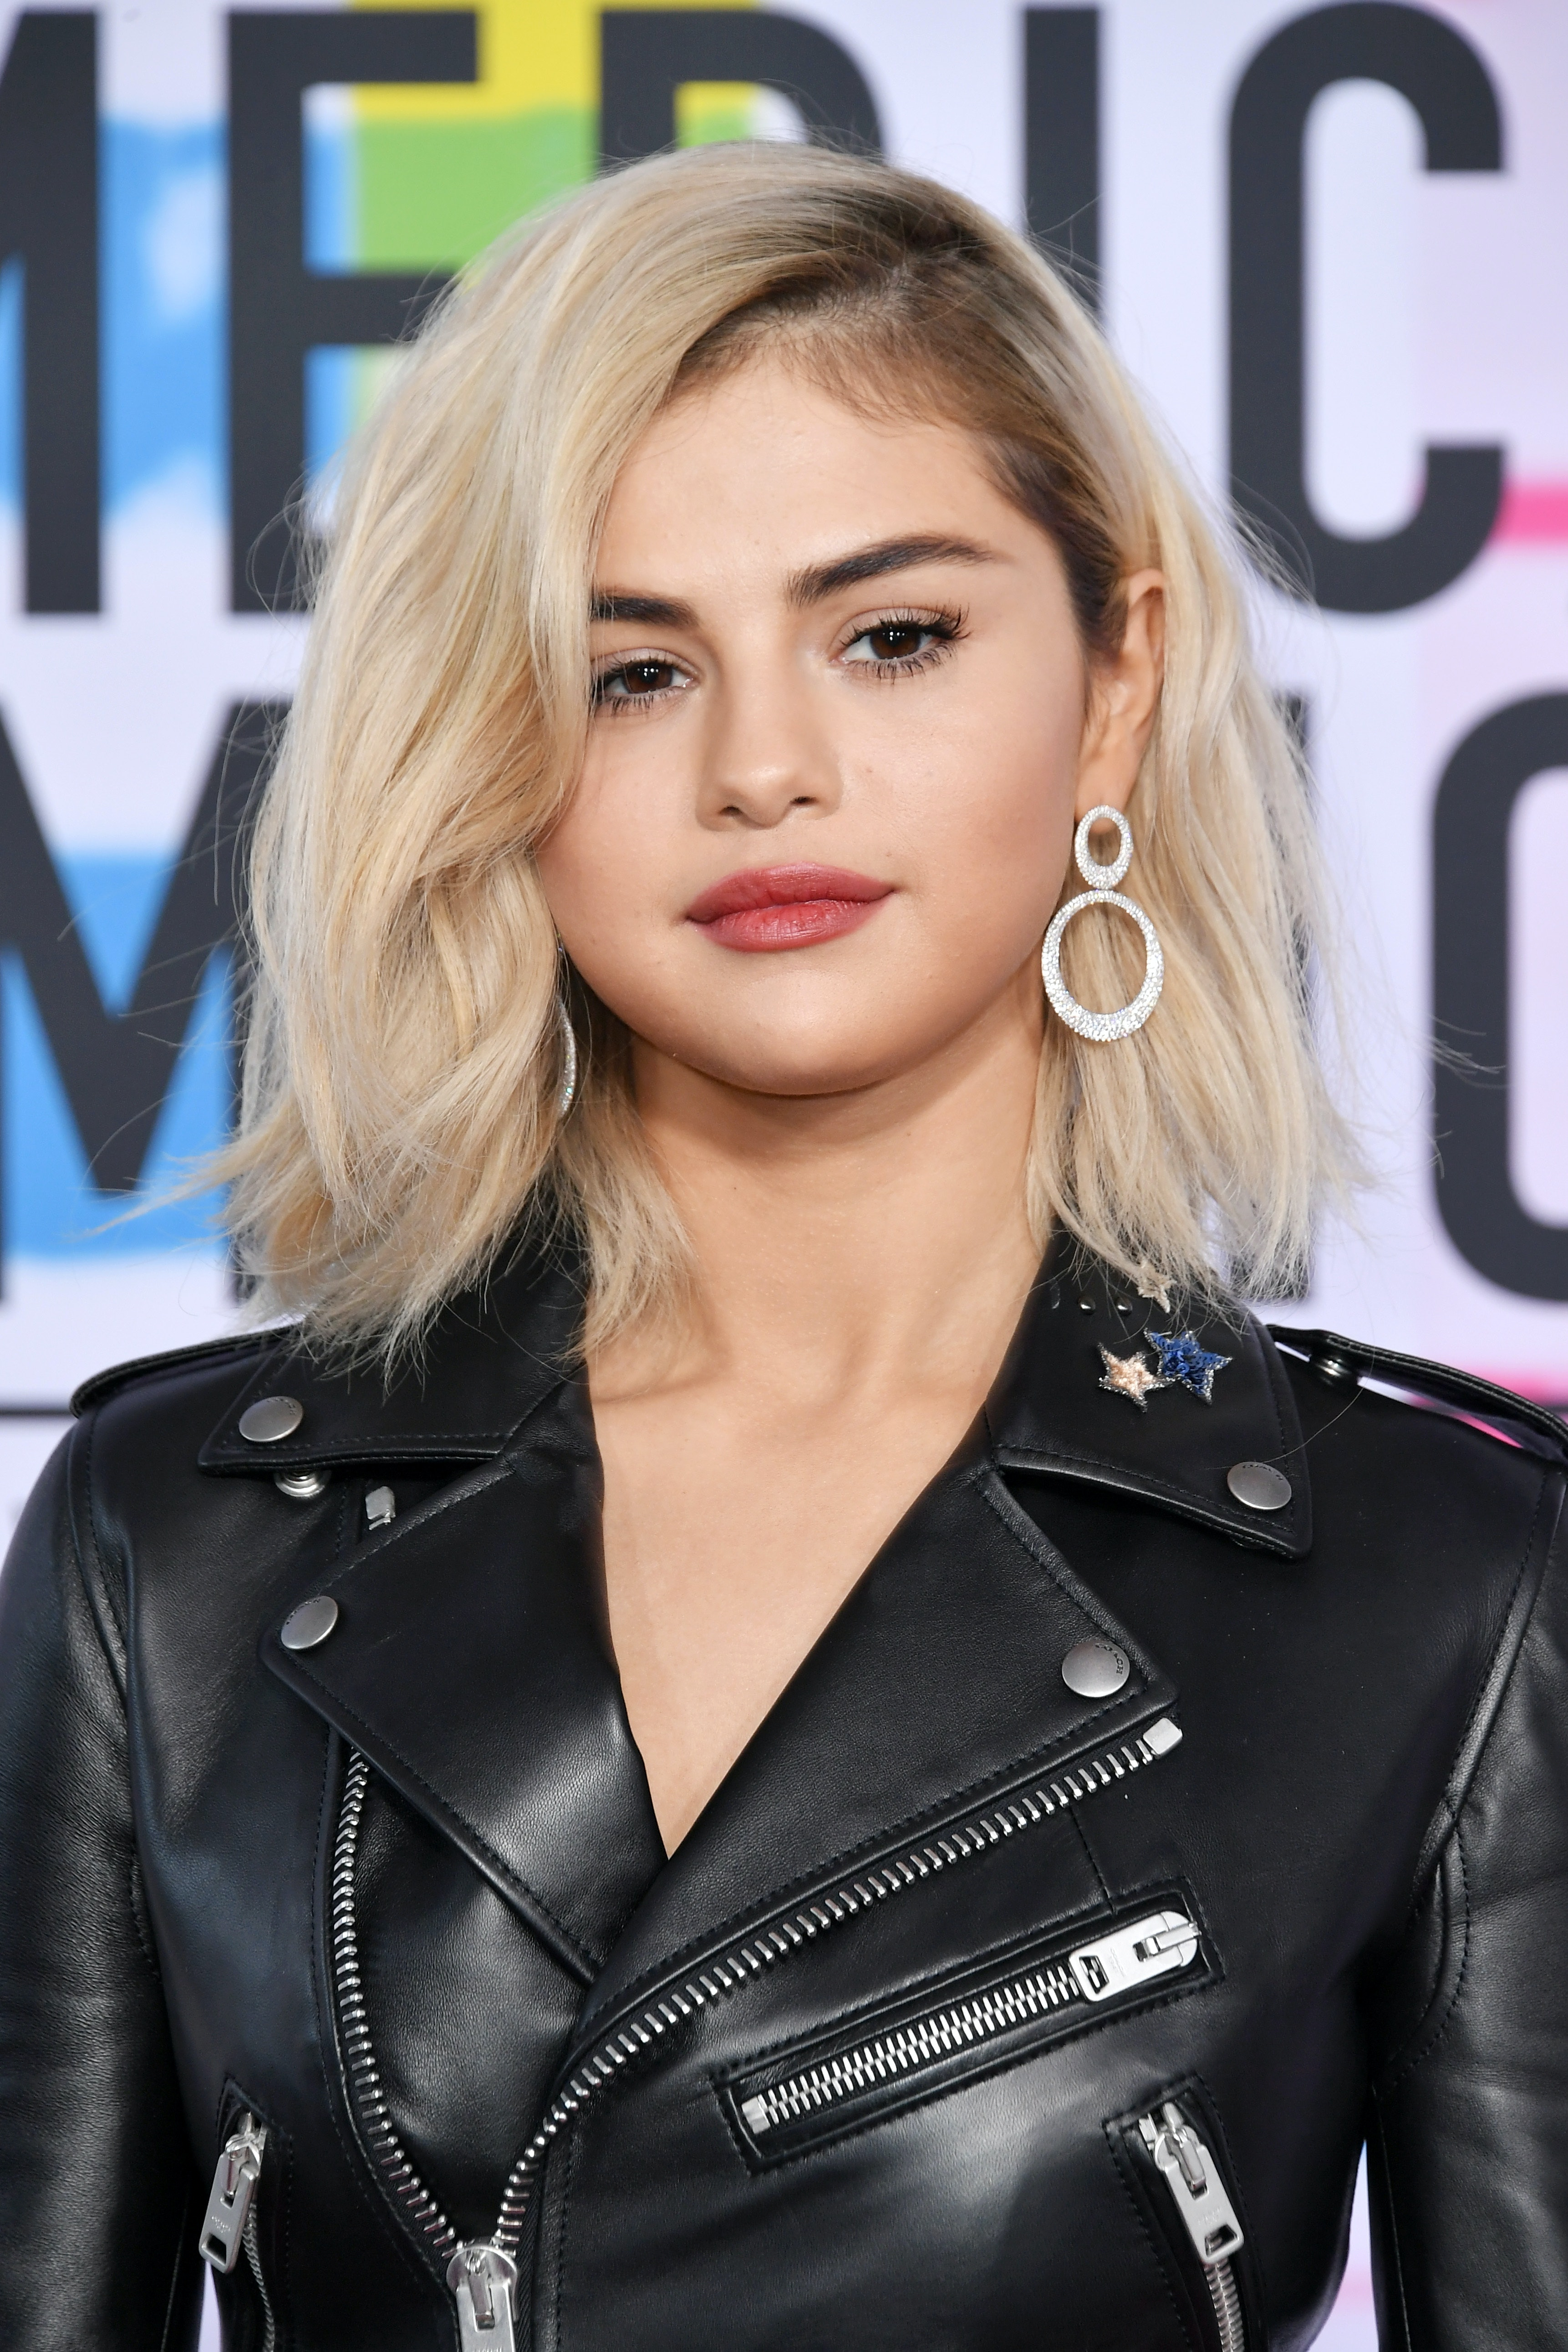 Is Selena Gomezs Blonde Hair Real The Singer Debuts A New Look At